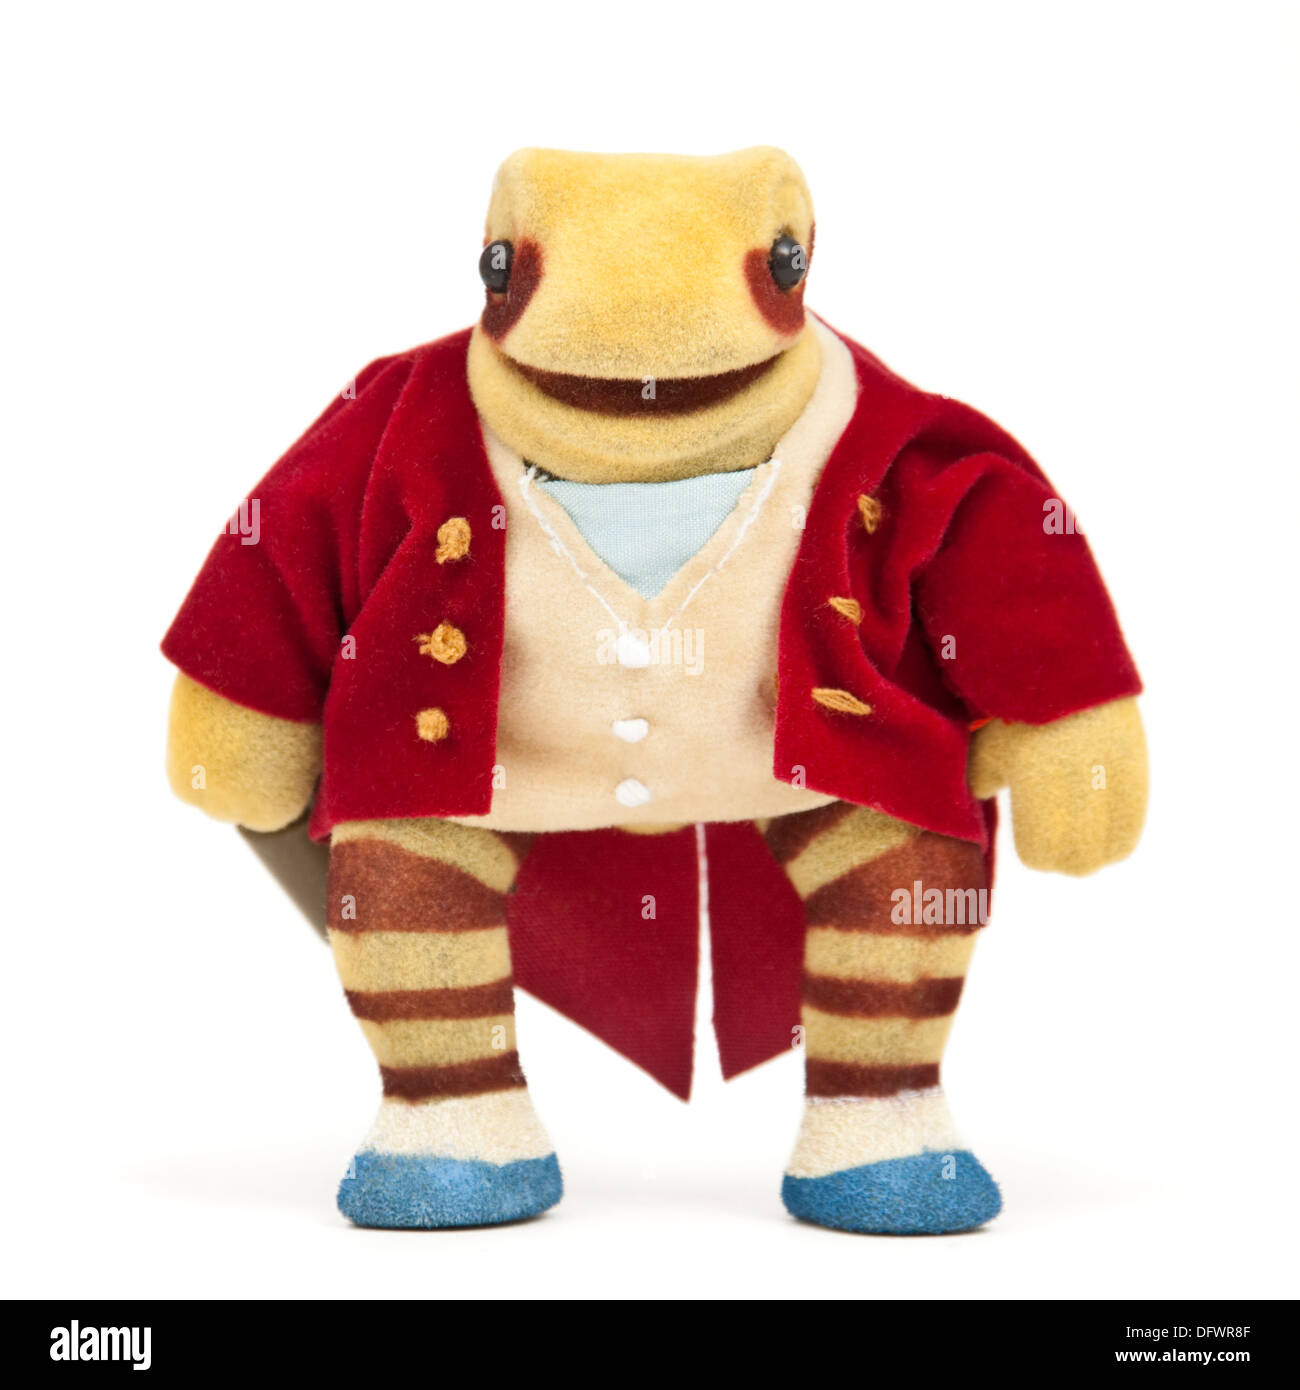 Plush toy based on 'The Tale of Mr Jeremy Fisher' by Beatrix Potter (1906) - Stock Image